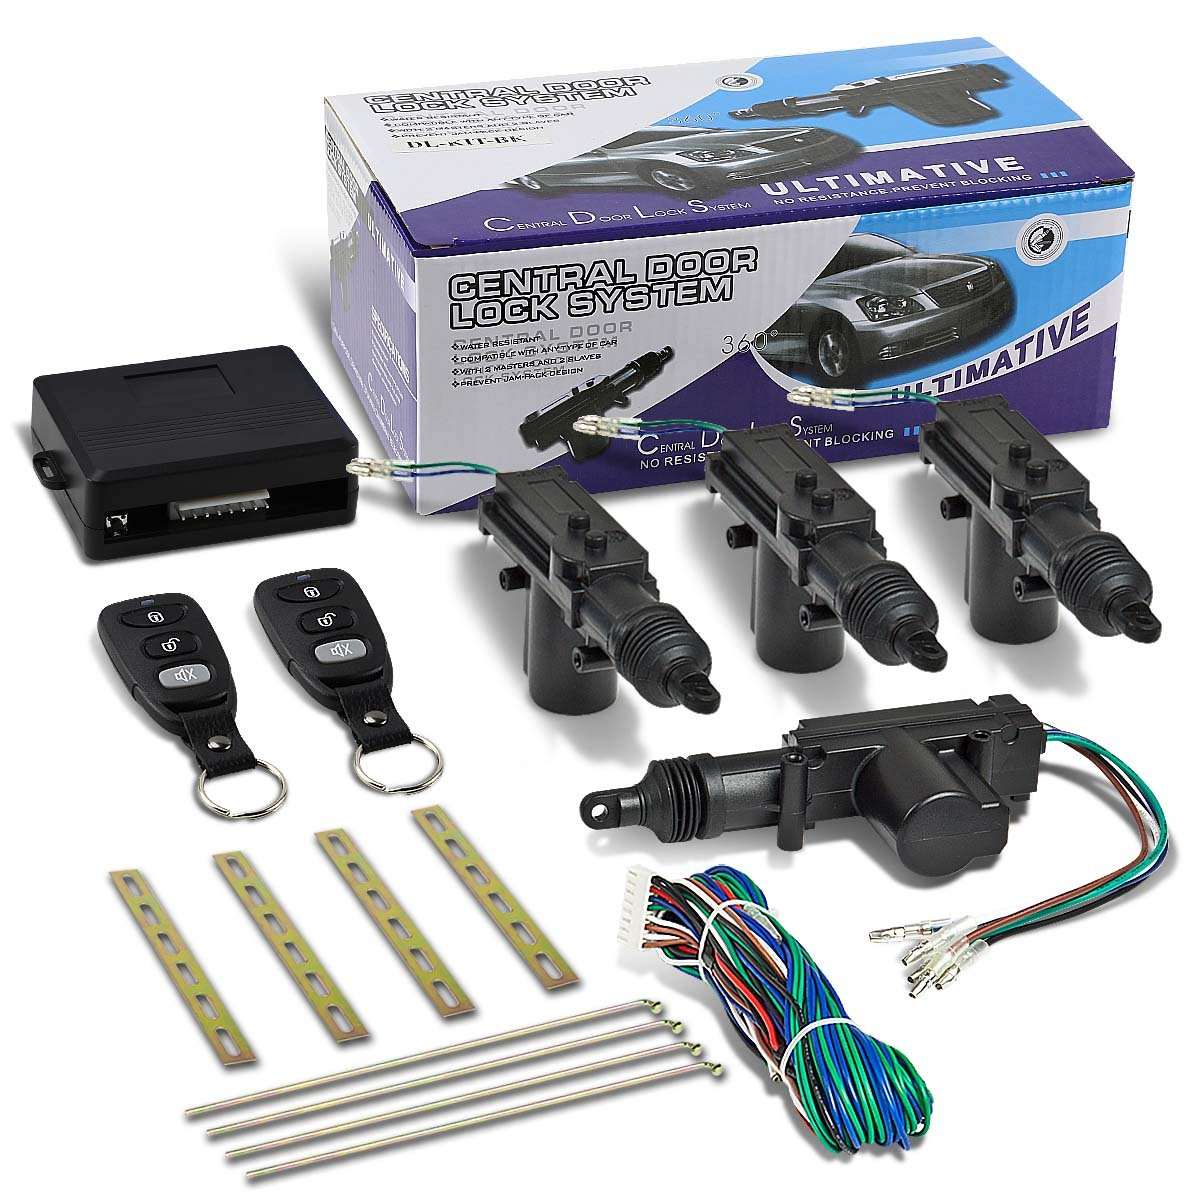 T4 Keyless Entry 4 Door Lock Convertion Kit With Remotes Toyota Tacoma Power Wiring Diagram Automotive